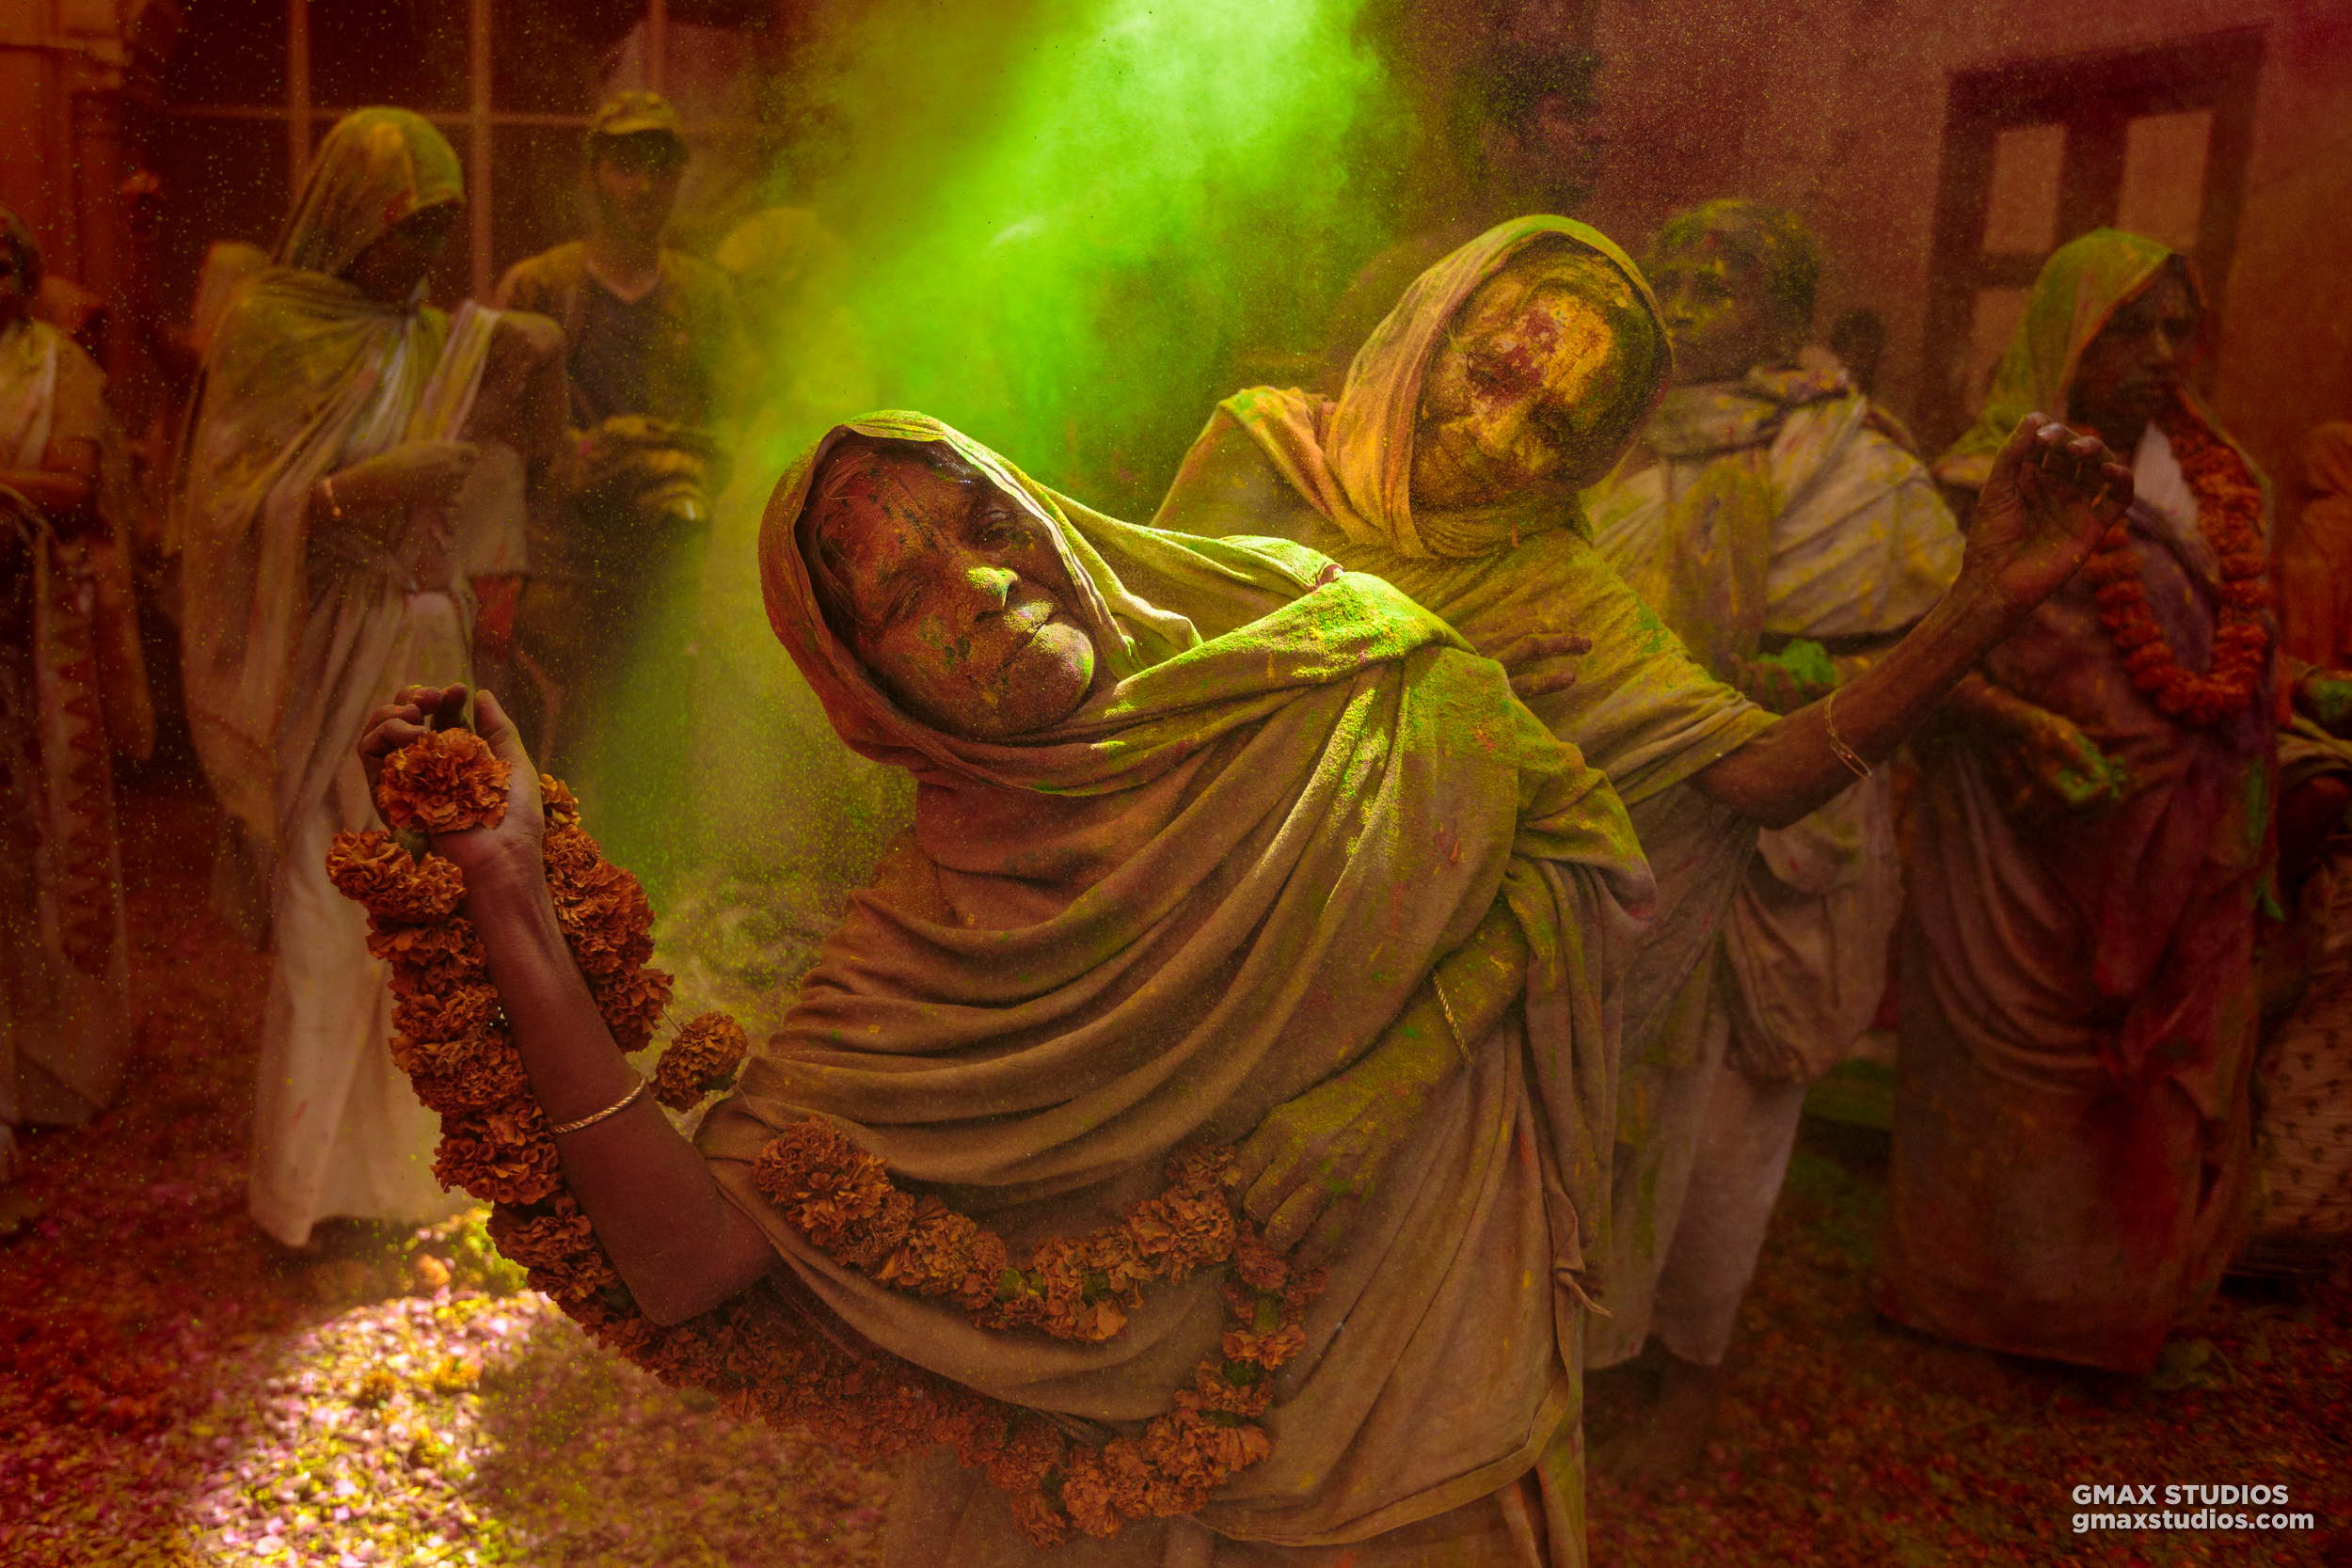 As a photographer, if you're determined enough, the opportunities present themselves. The tarpaulin roof in the temple corridor had a hole in it, and a trail of light shone through - making the moment even more magical.